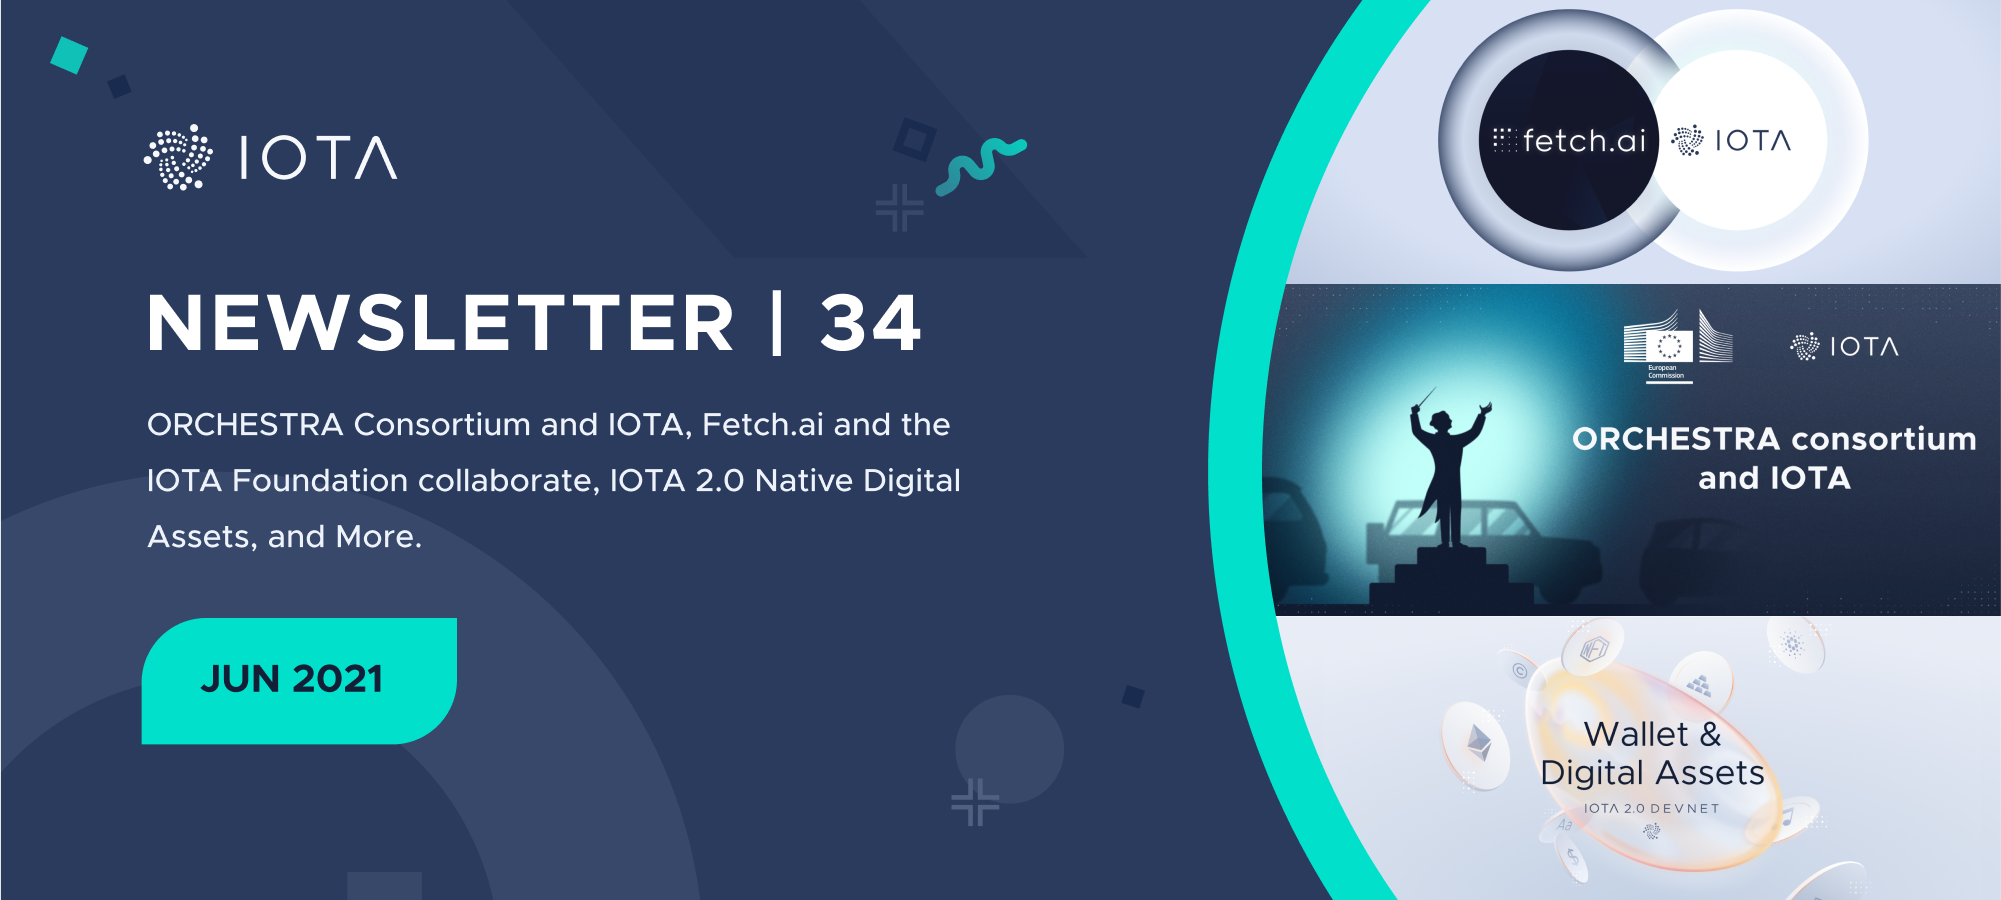 Newsletter # 34 - ORCHESTRA Consortium, Fetch.ai, IOTA 2.0 Native Digital Assets, and More